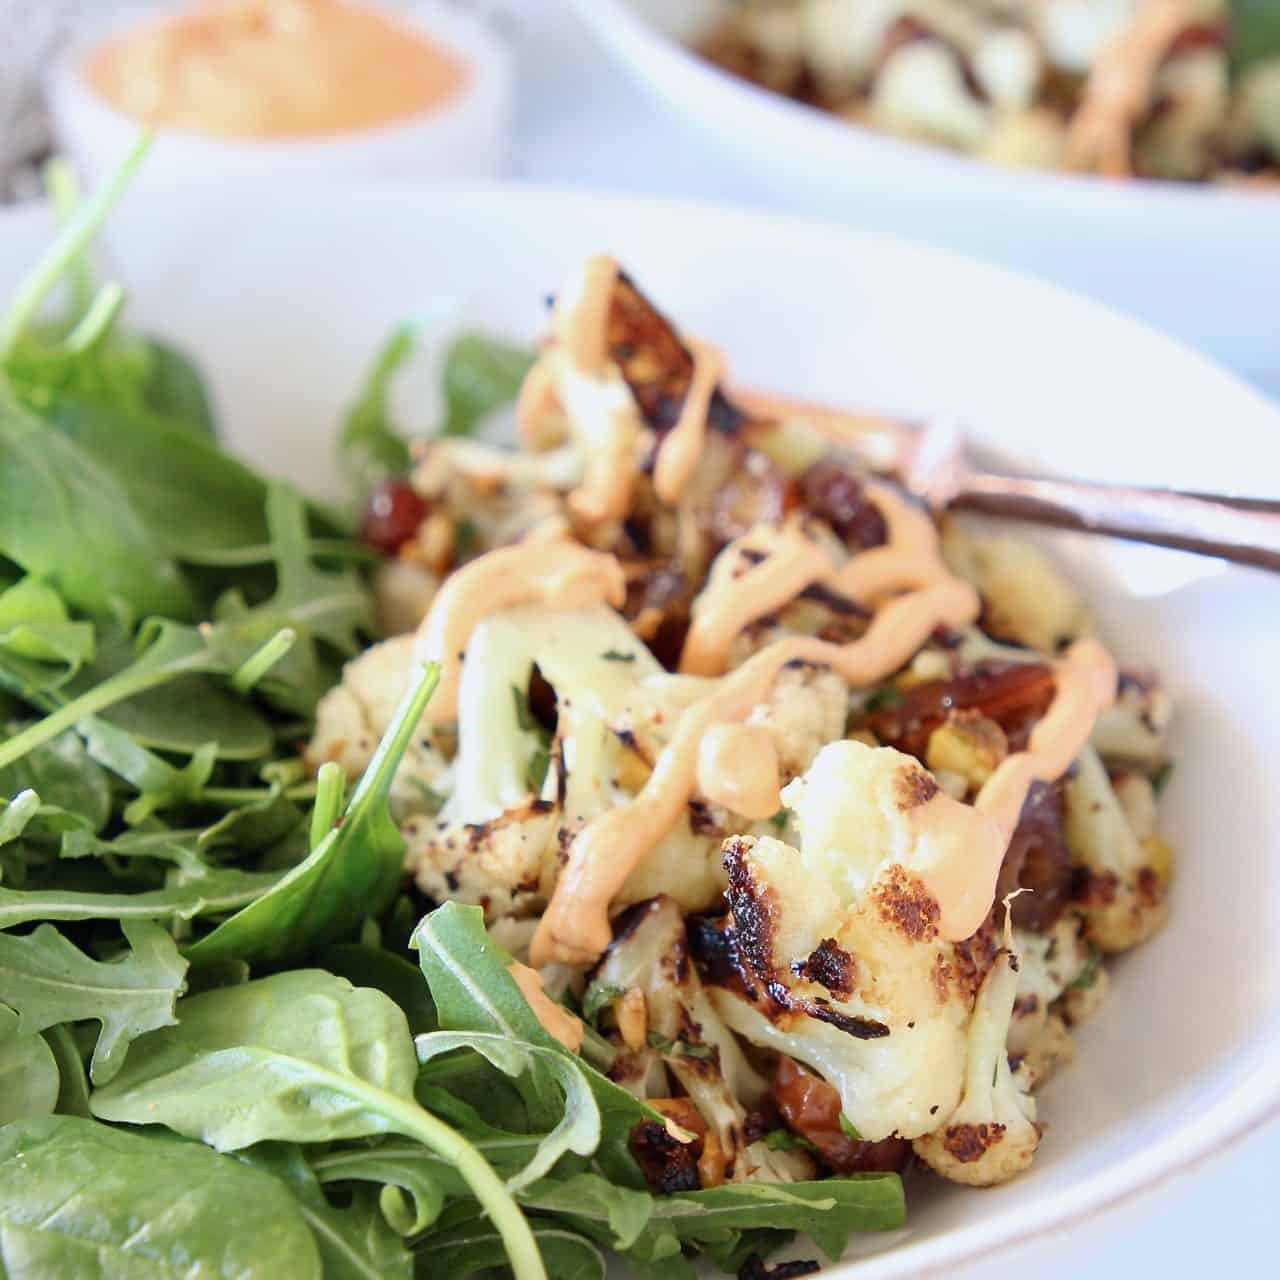 Charred cauliflower in bowl with arugula and chopped dates